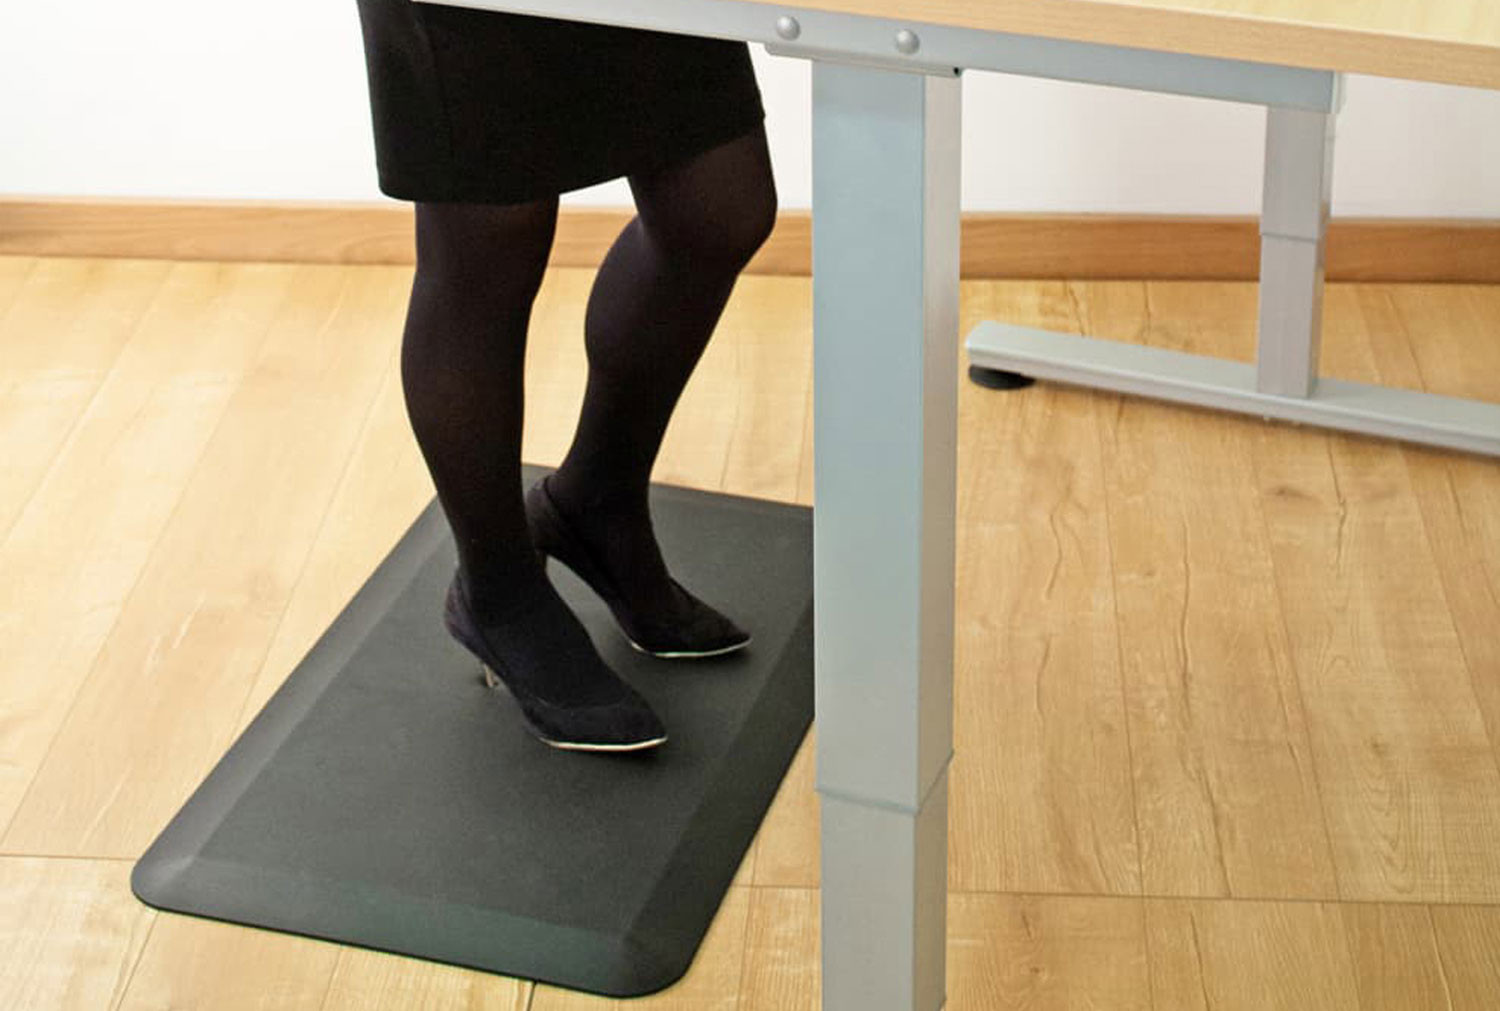 Orthomat Comfort Mat For Sit & Stand Desks